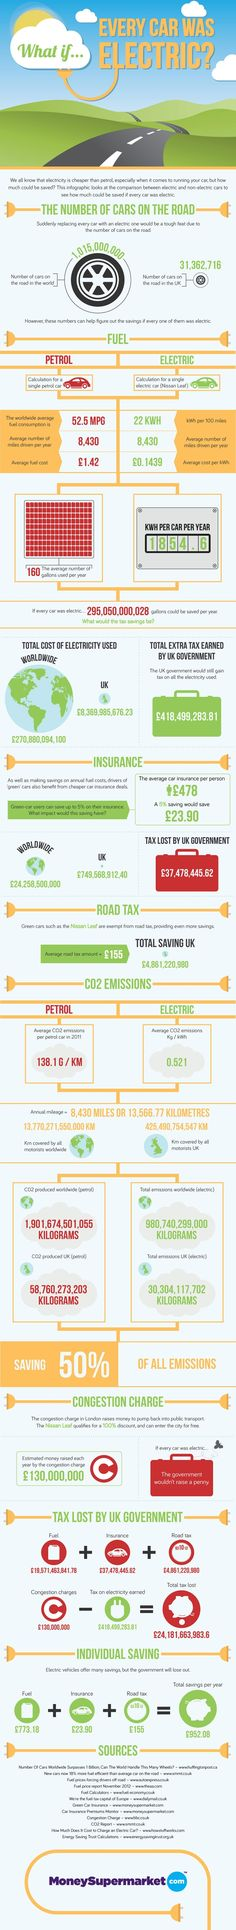 About electric cars. #infographic